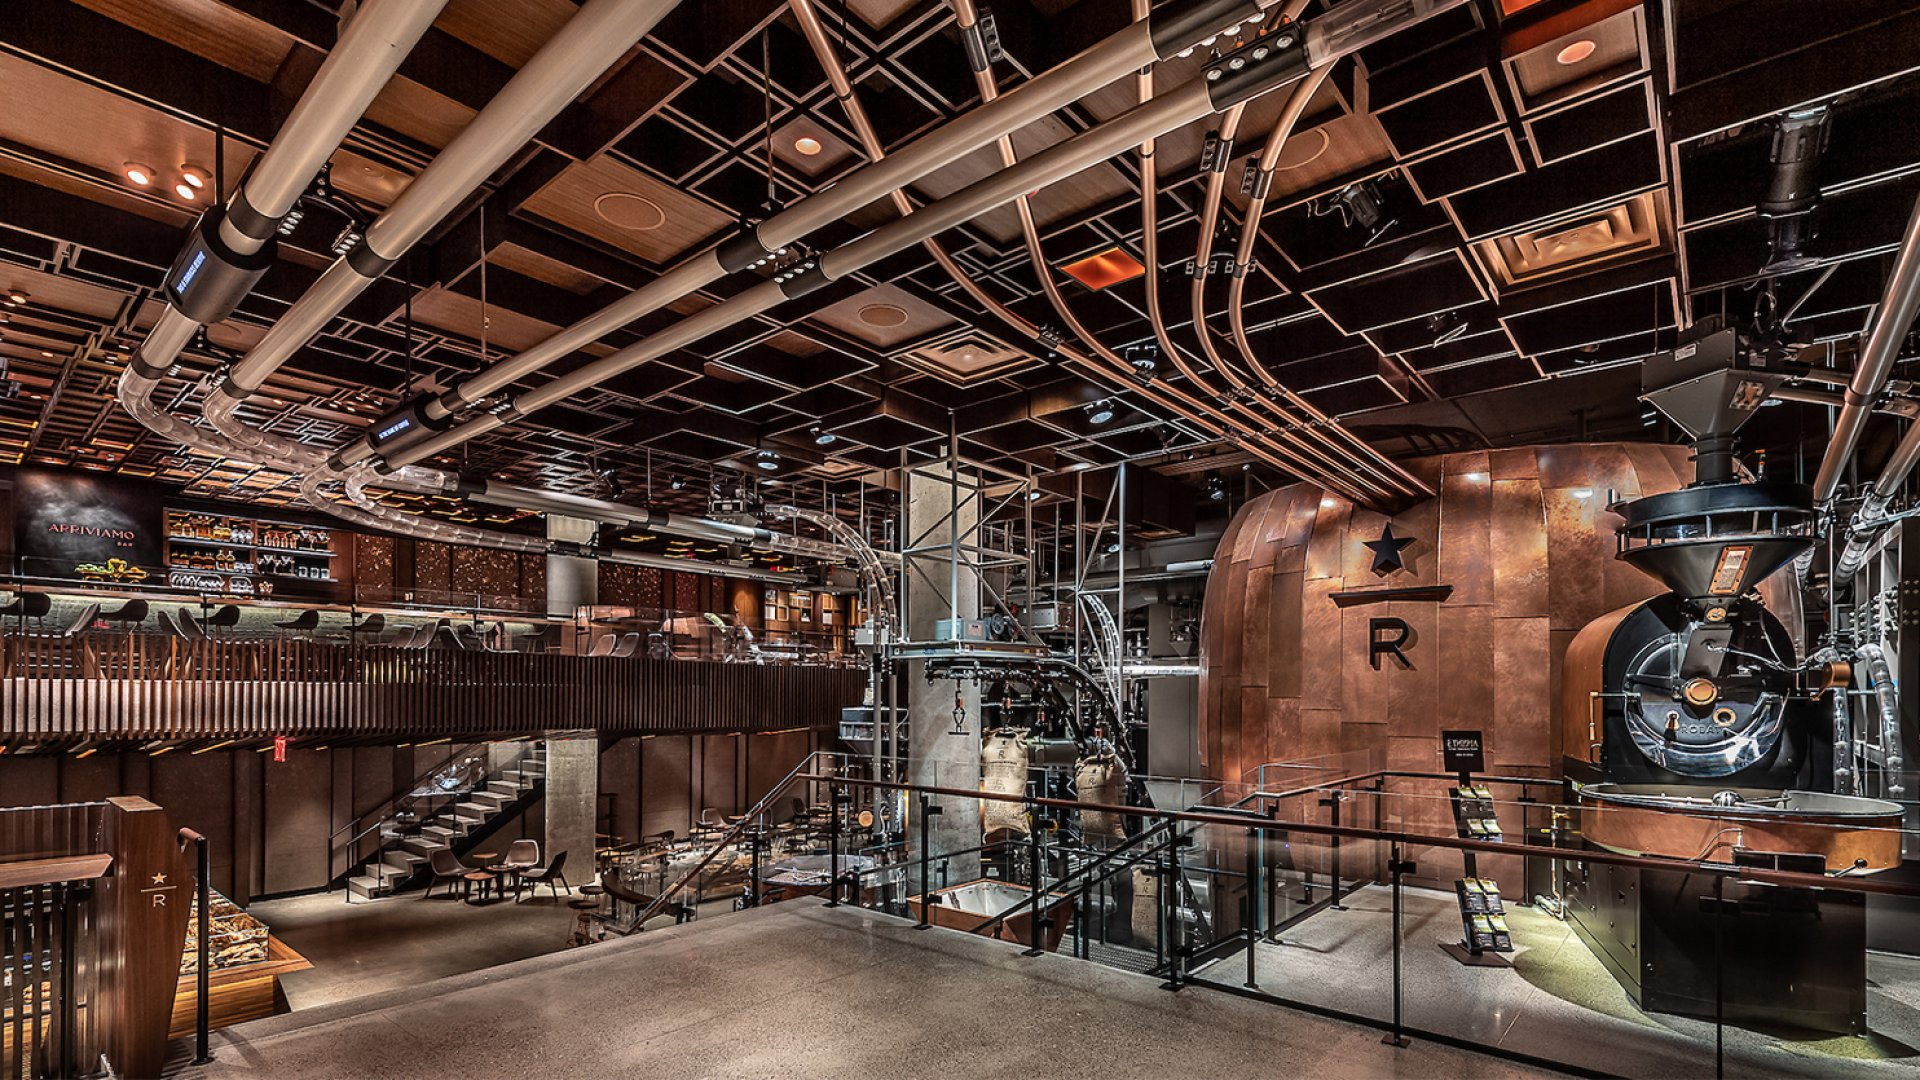 Starbucks opened its new 23,000-square-foot Reserve Roastery in New York City.